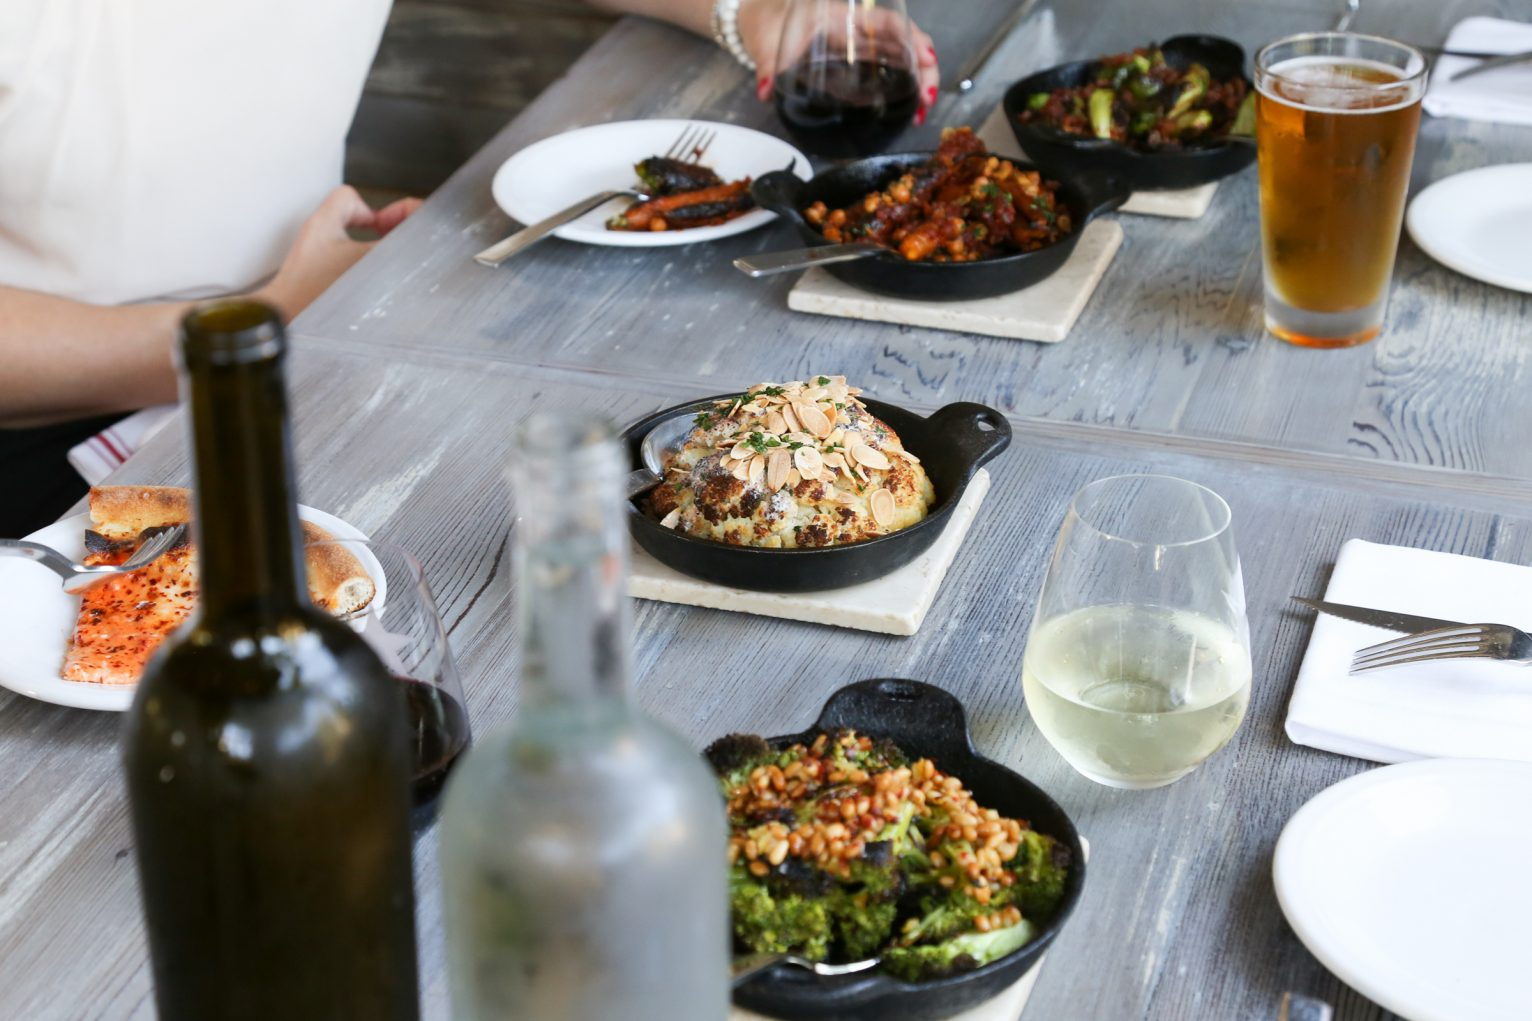 Dinners enjoying locally-sourced food